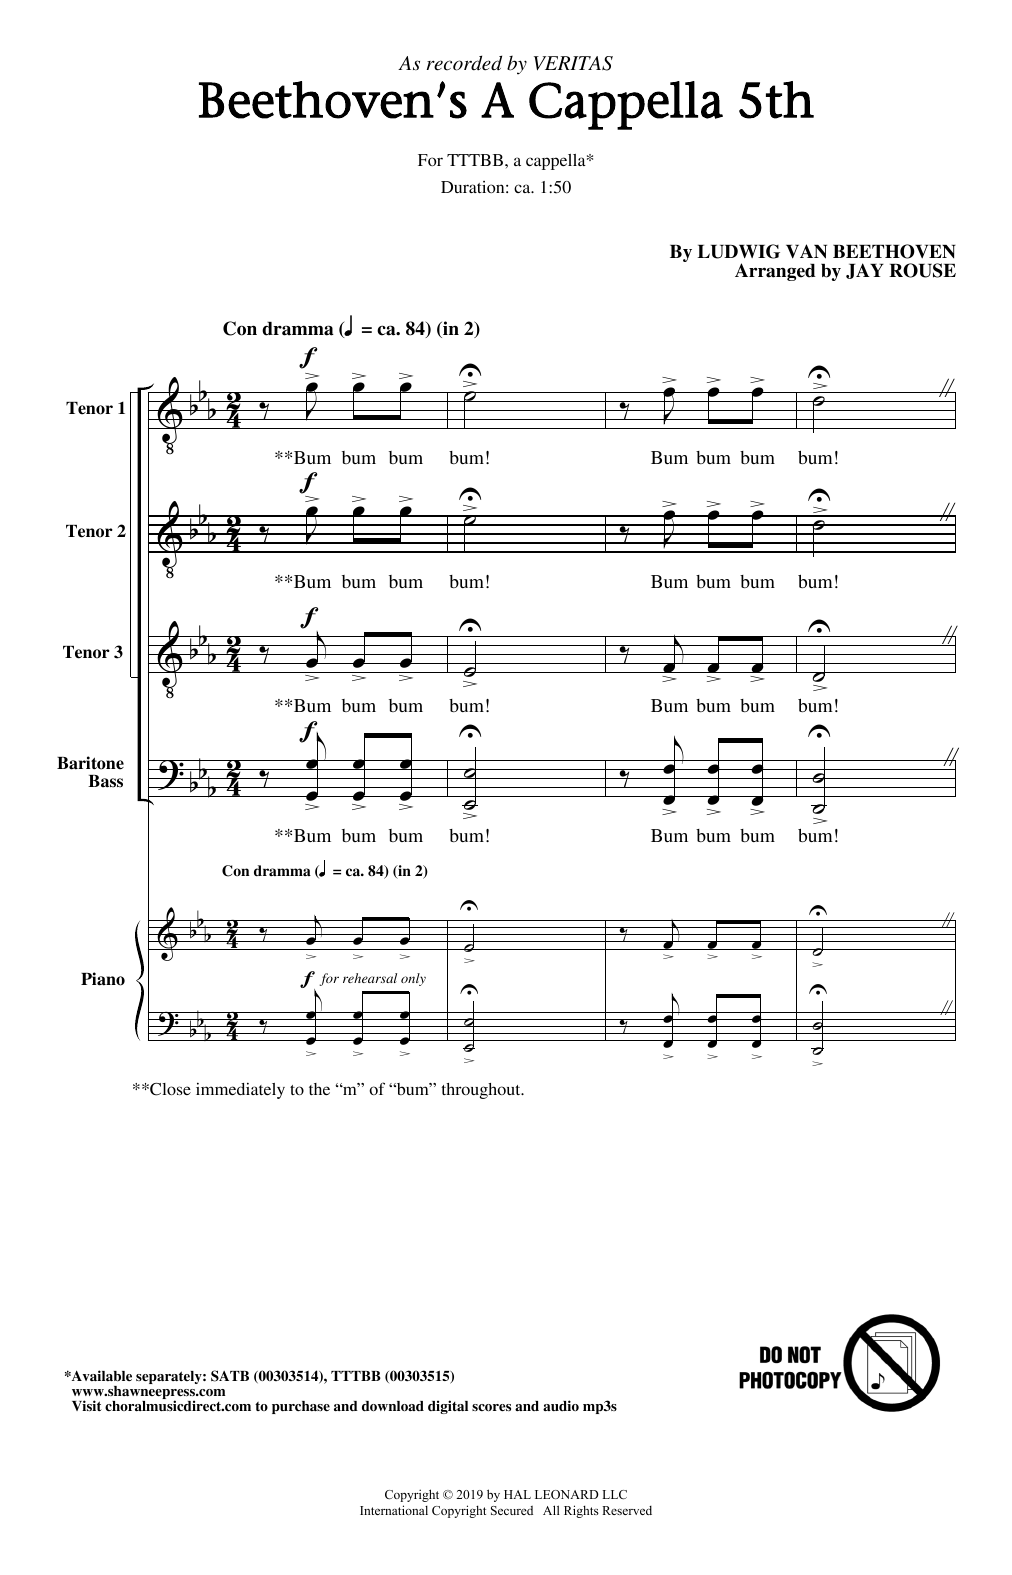 Beethoven's A Cappella 5th (arr. Jay Rouse) (Choir)